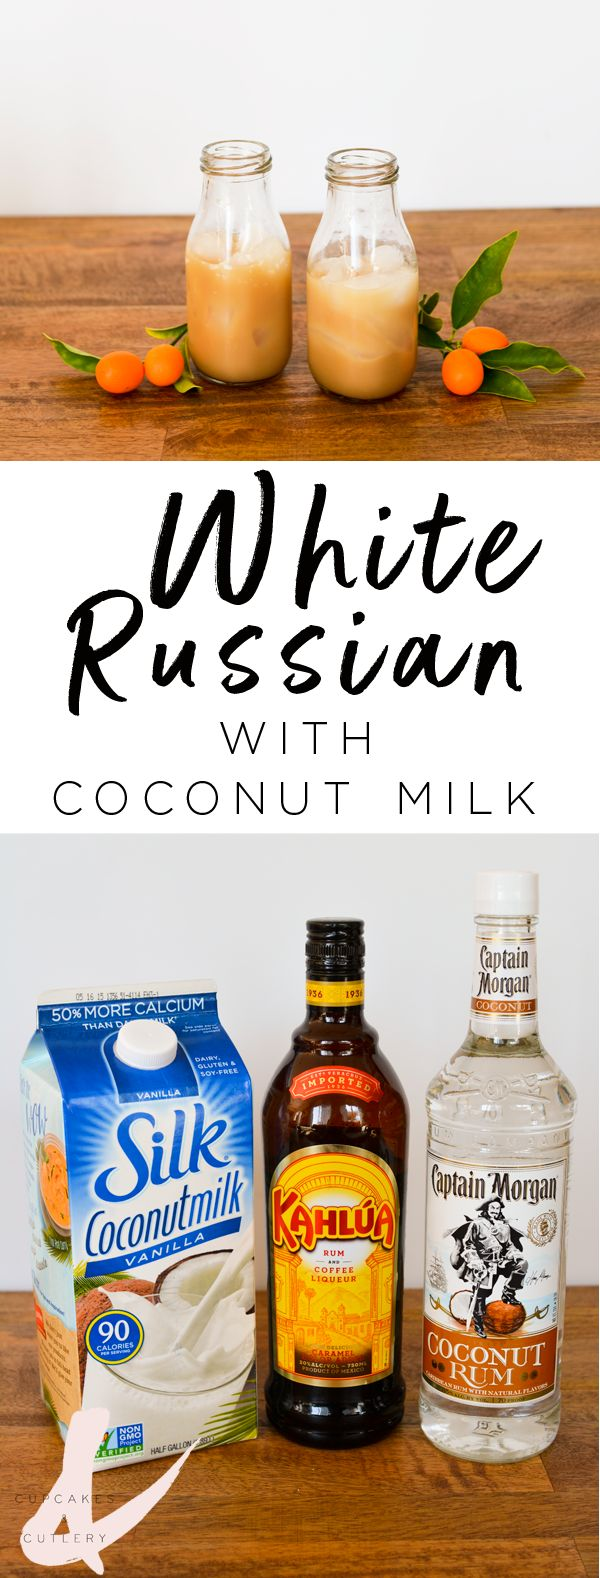 Here's my yummy take on a White Russian but with coconut rum instead of vodka. I call it The Little White Lie.